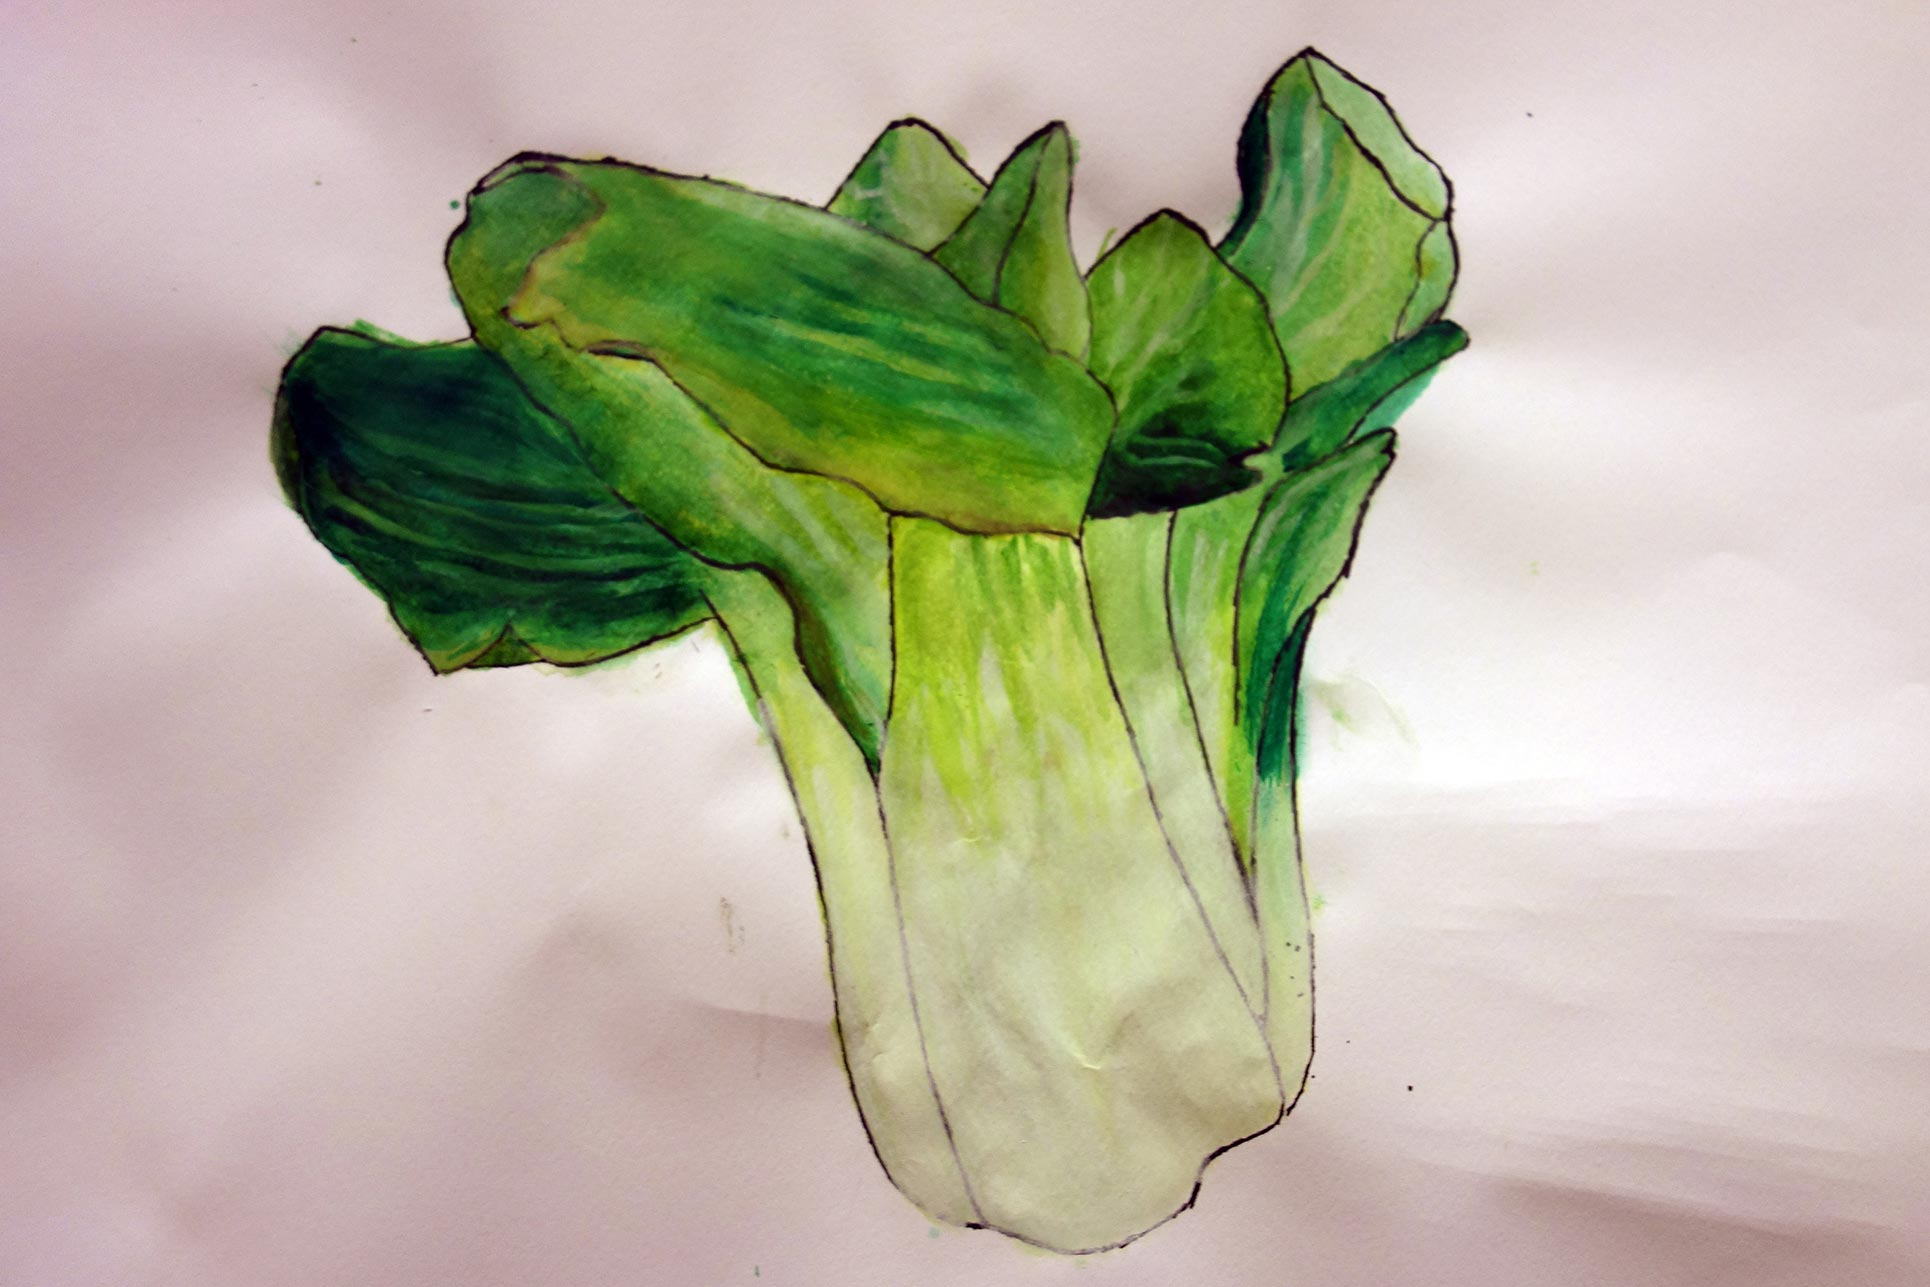 Scientific visualization: strange vegetable, year 9 and 10